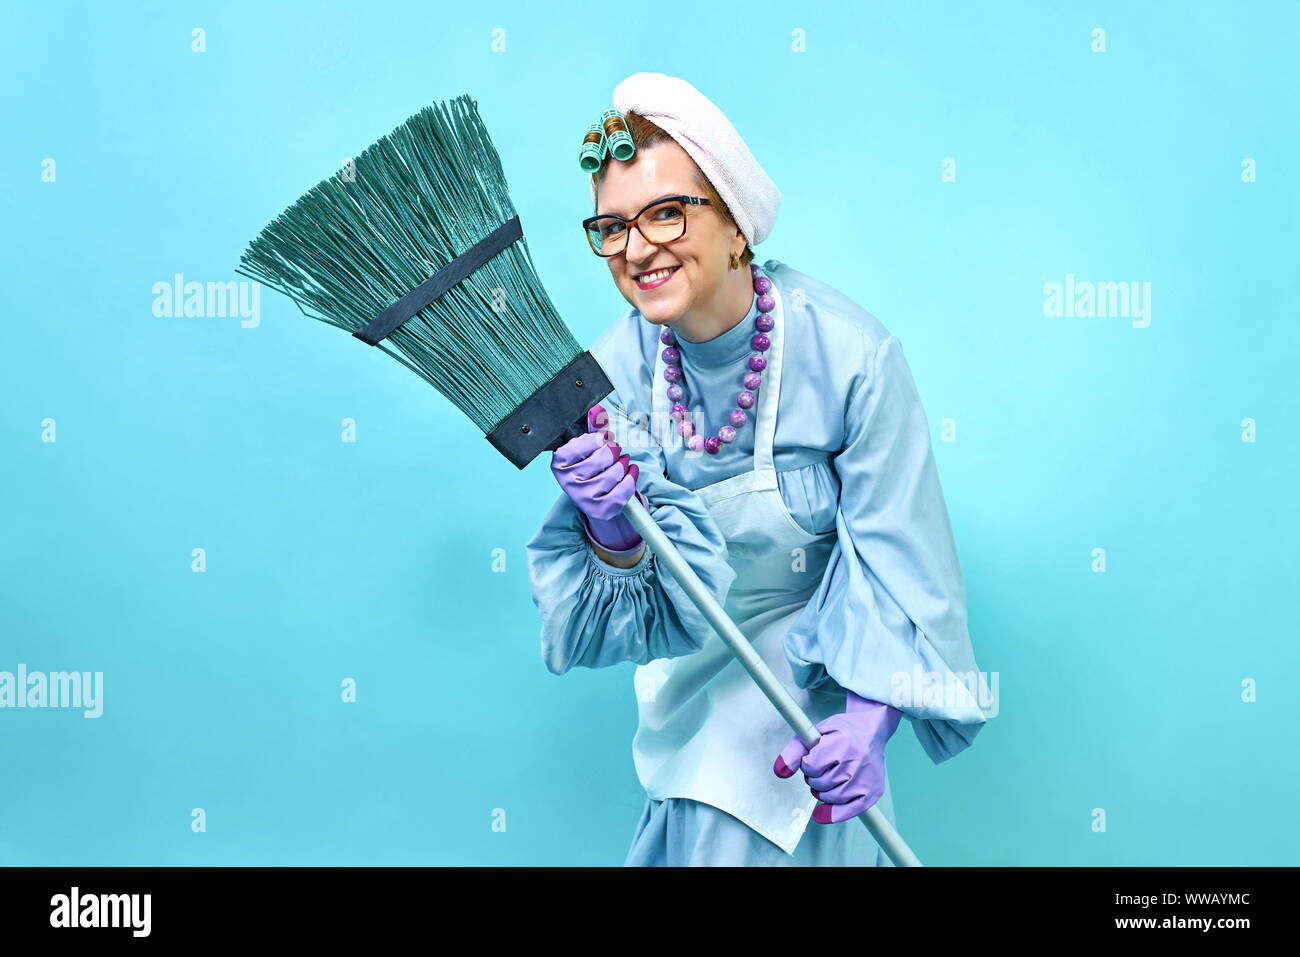 Cleaning Lady smile Fun. Elderly funny housewife fooling around with a broom. Full body isolated. Comical cleaning lady, old woman funky Stock Photo